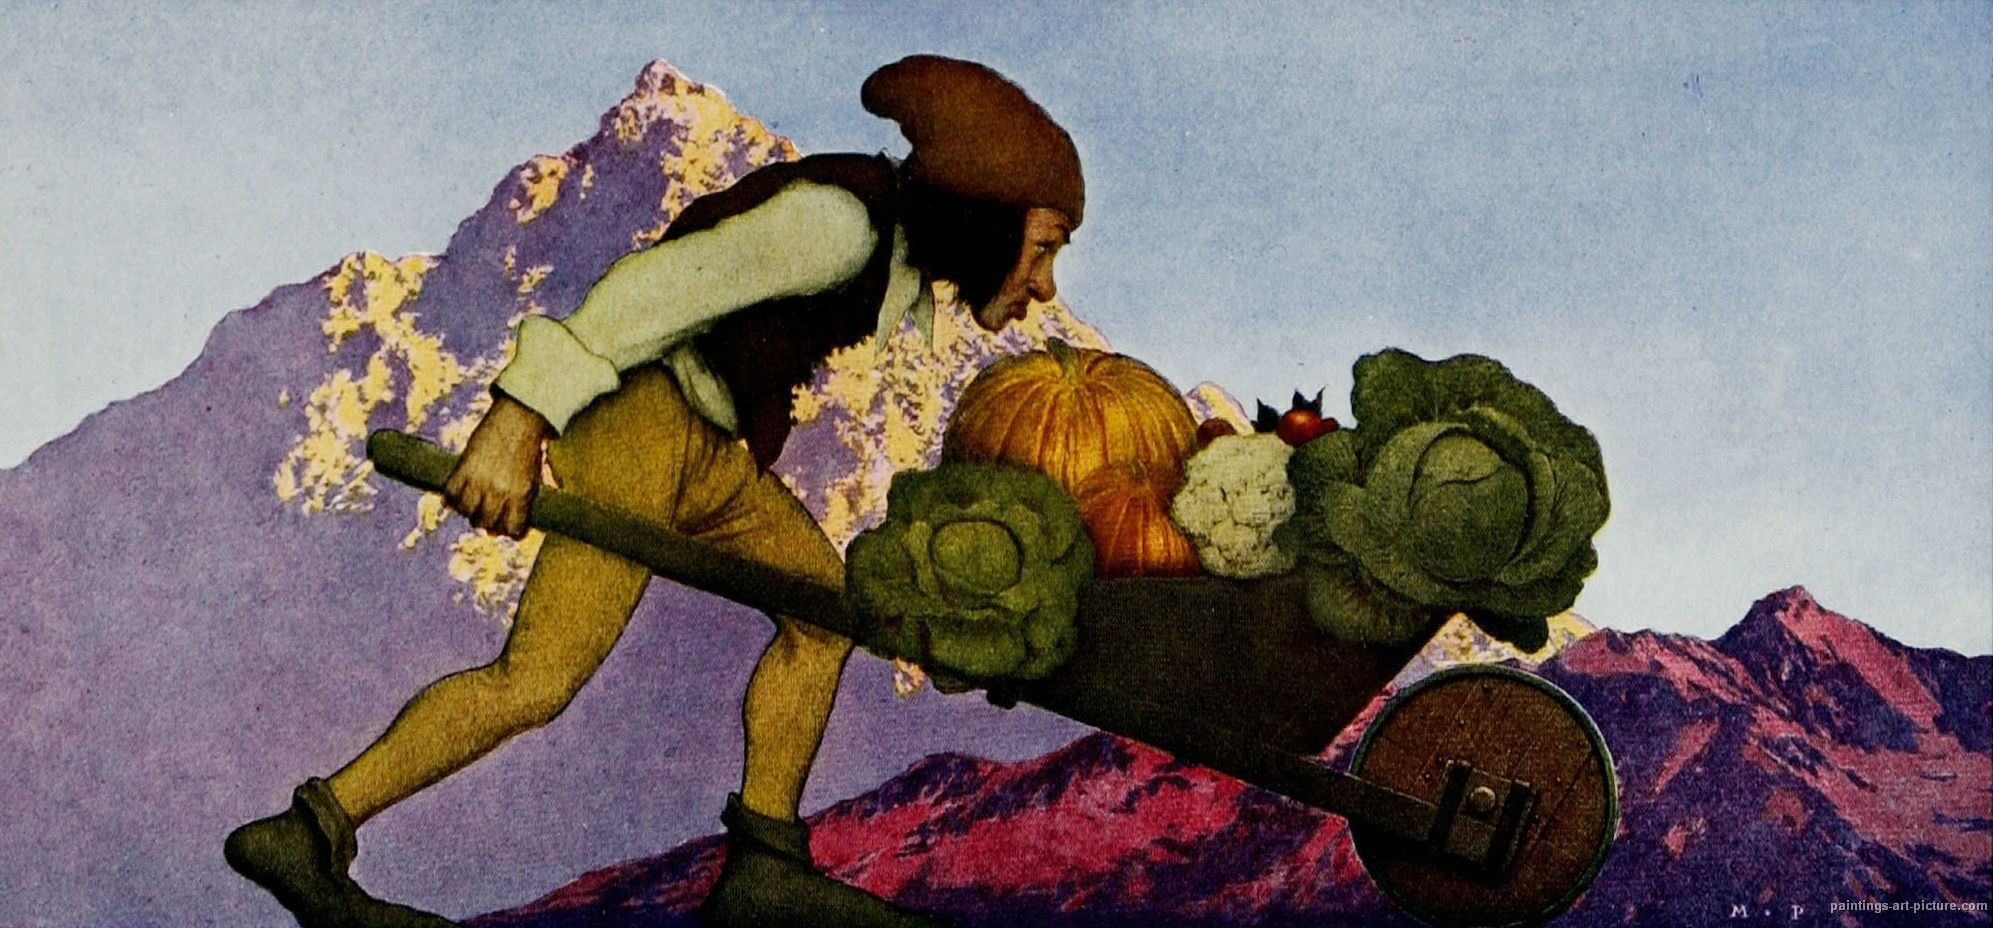 Maxfield Parrish Art Gallery | The Gardener Wheeling Vegetables from Knave of Hearts, 1925.jpg